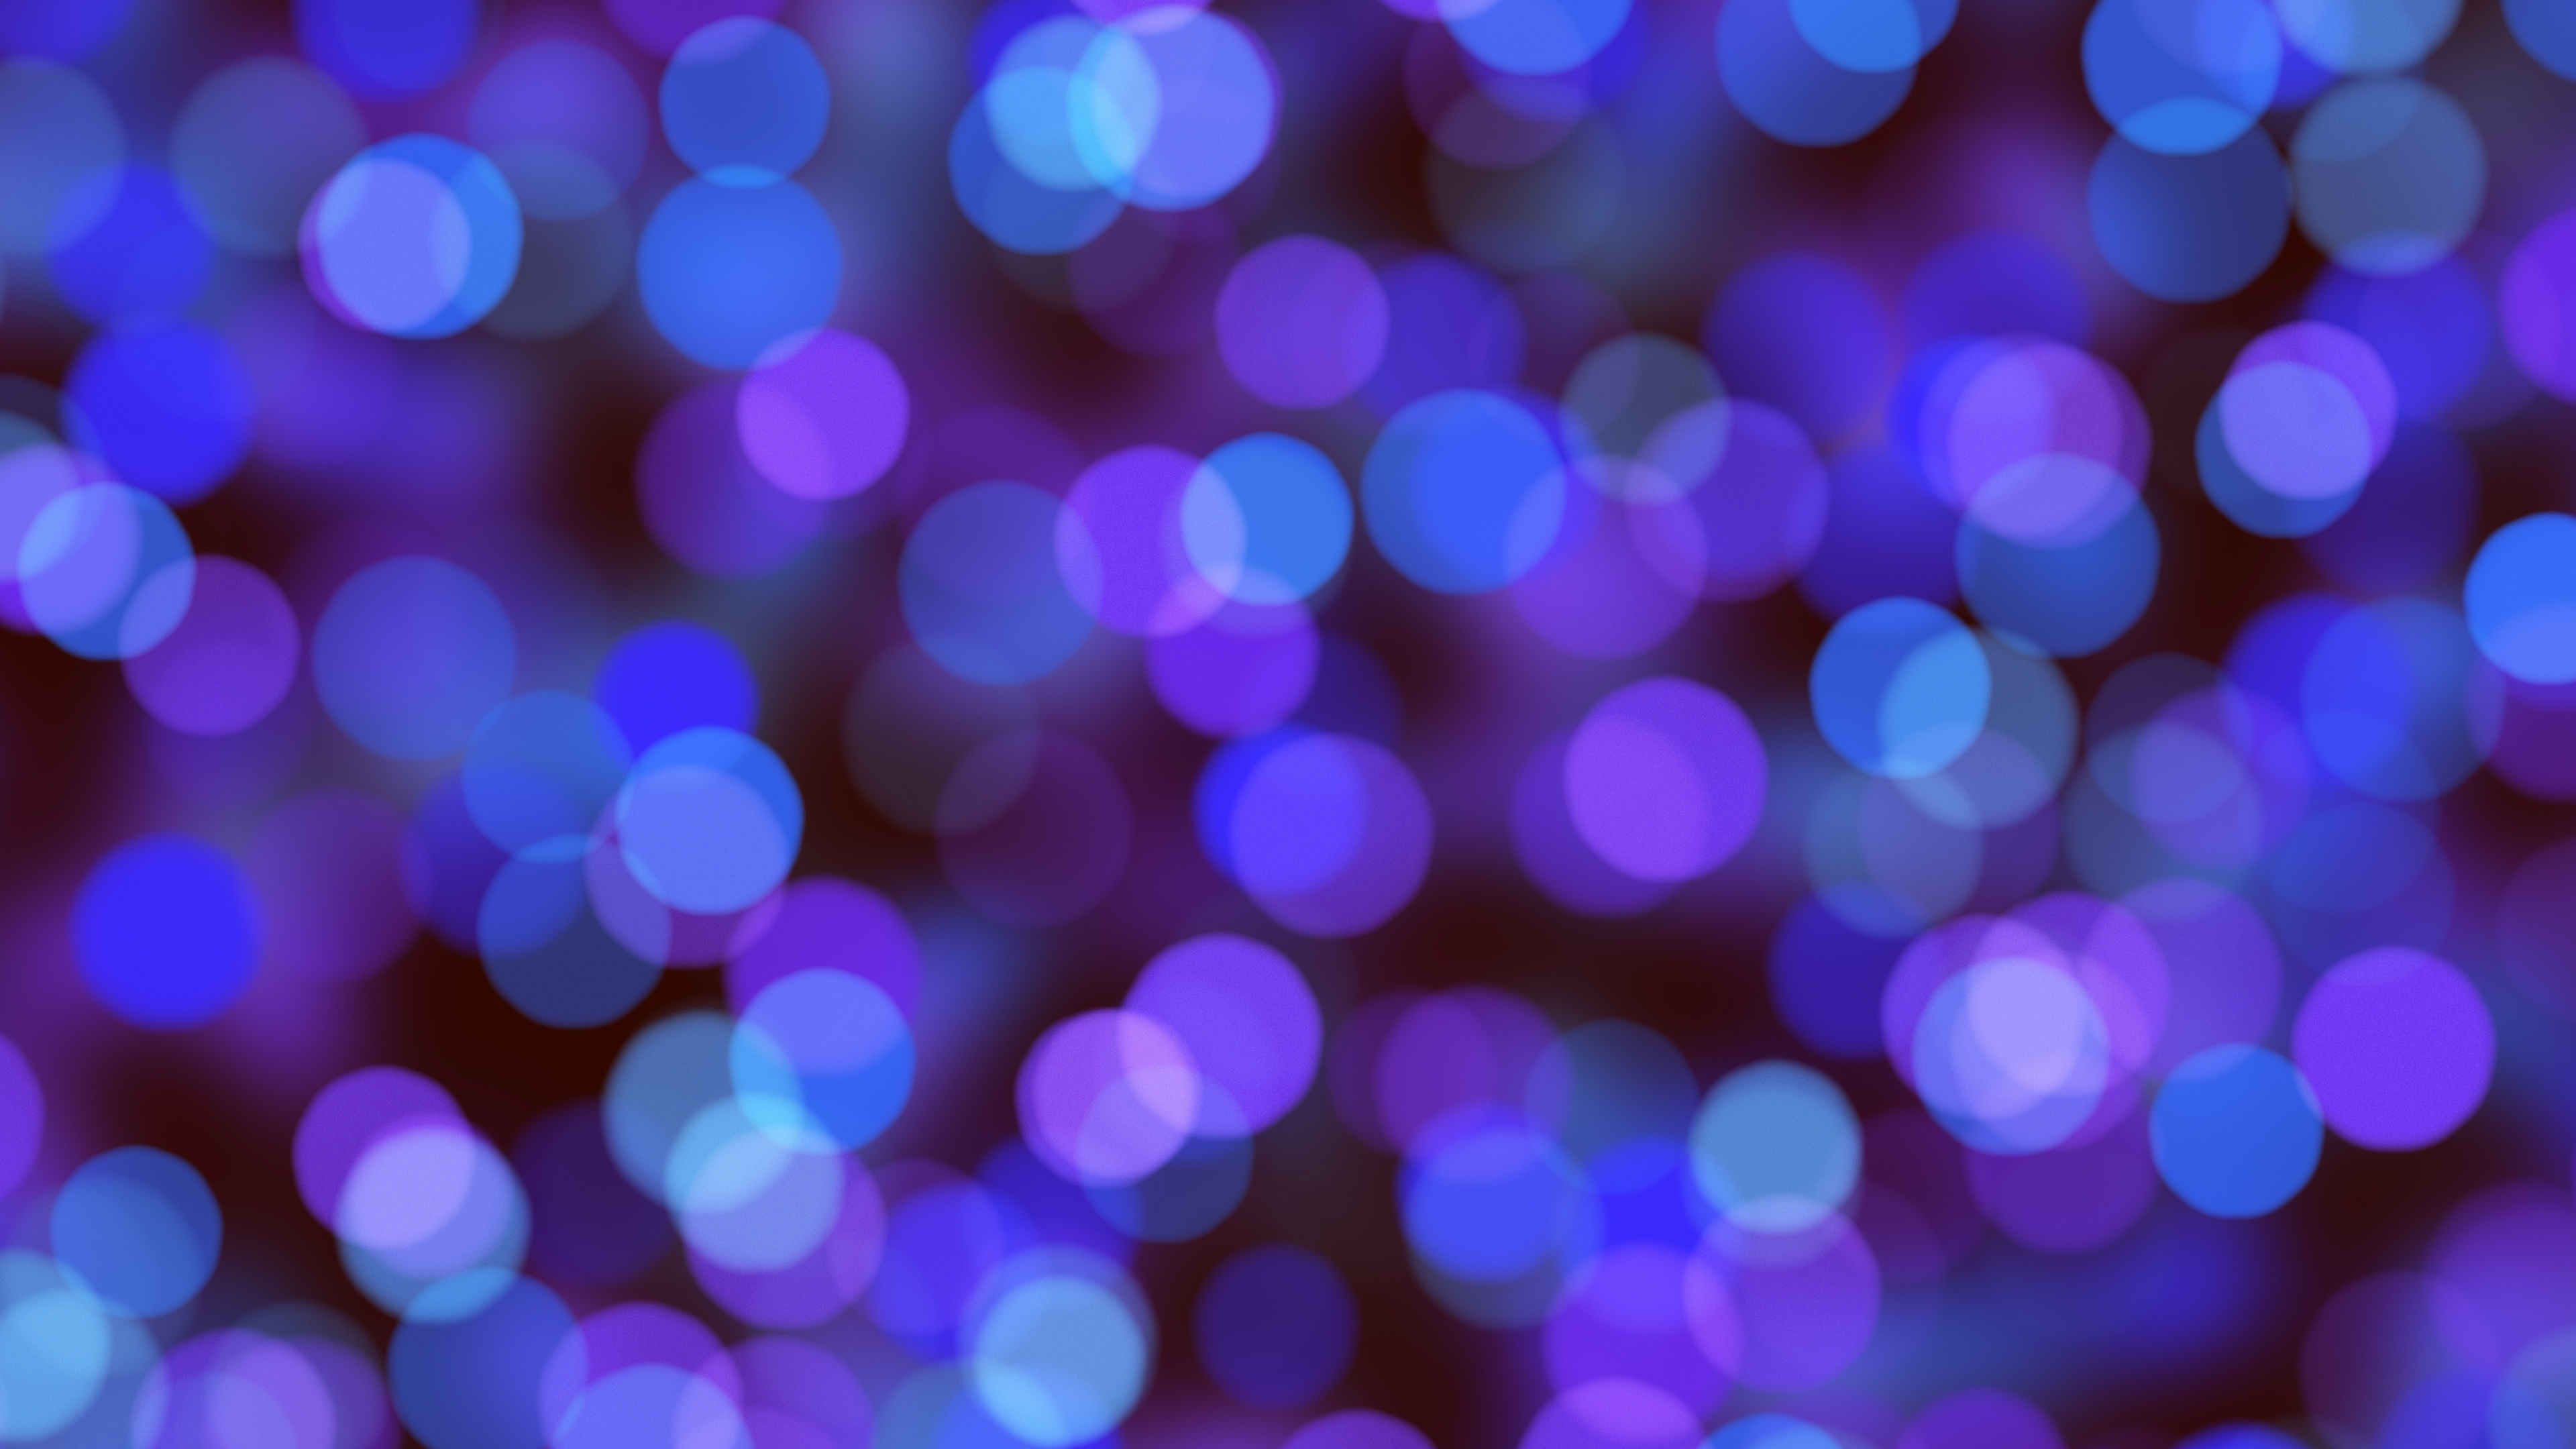 bokeh effect blue 1540751704 - Bokeh Effect Blue - photography wallpapers, lights wallpapers, hd-wallpapers, digital art wallpapers, bokeh effect wallpapers, blue wallpapers, artwork wallpapers, artist wallpapers, 5k wallpapers, 4k-wallpapers